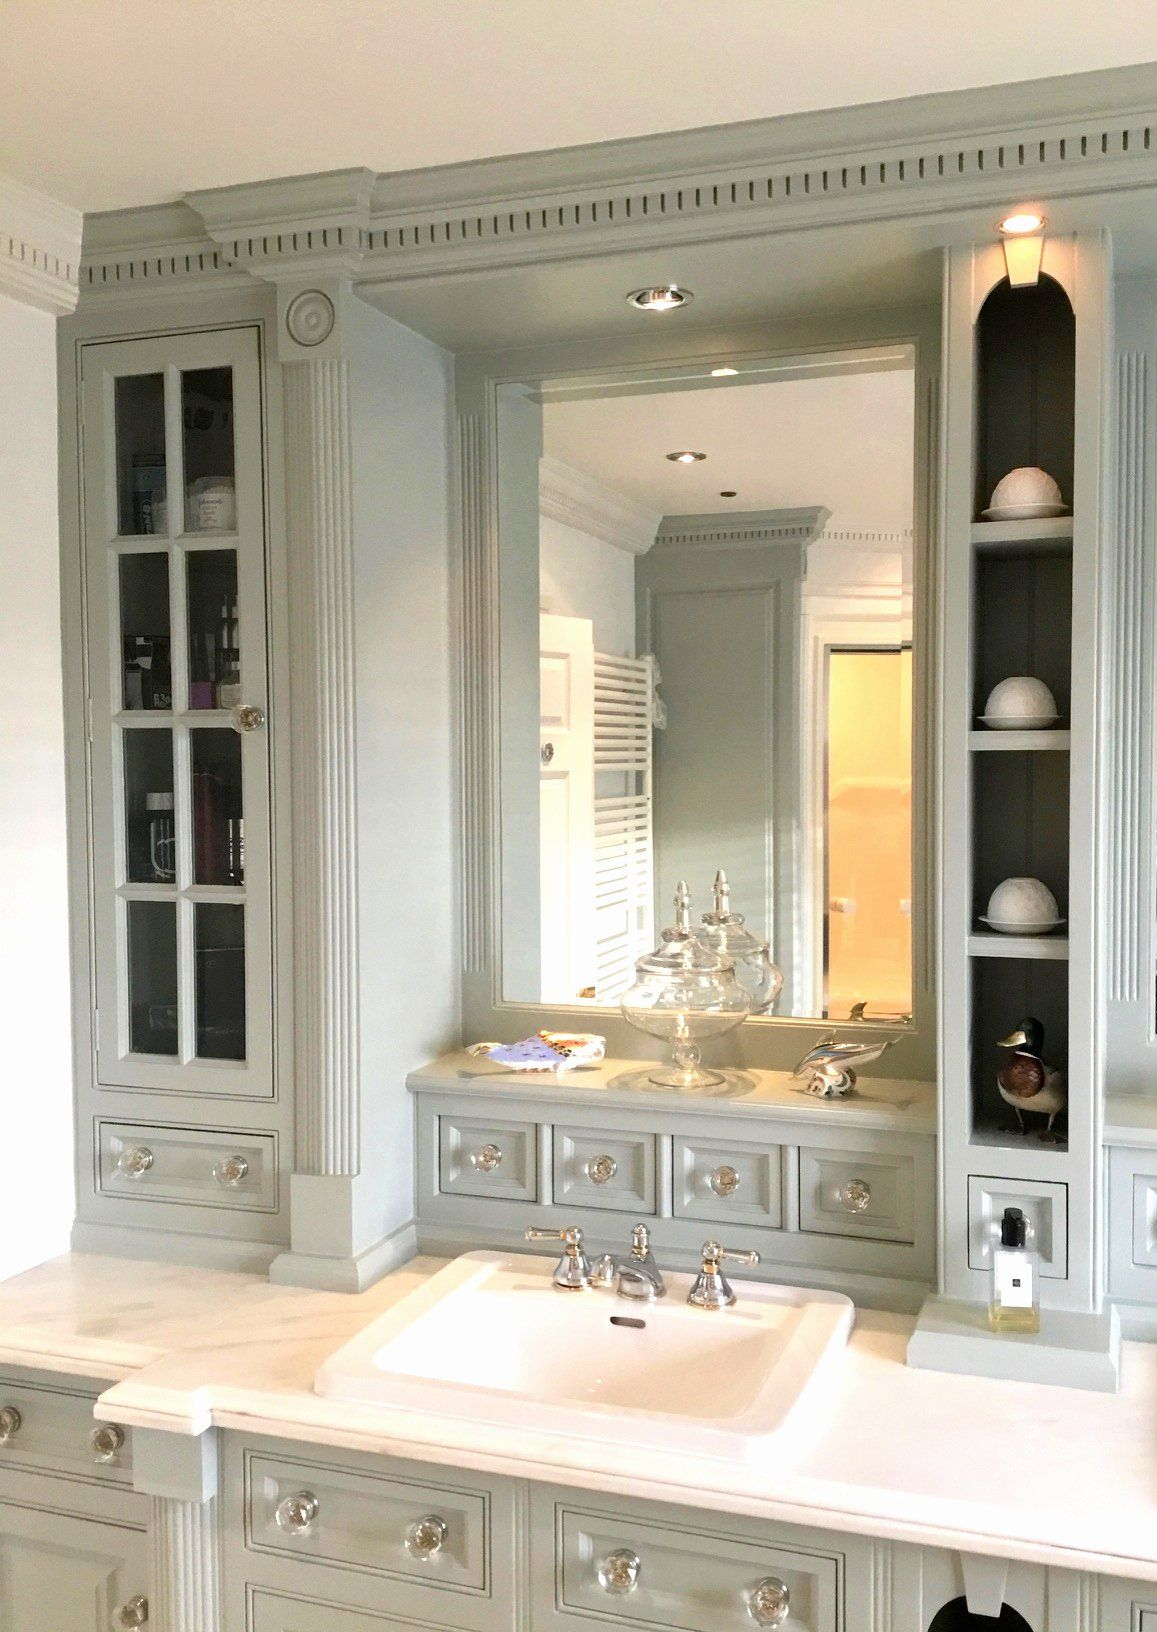 Second Hand Bathroom Vanities Beautiful Used Clive Christian Bathroom And Vanity Unit Used In 2020 Bathroom Vanity Bathroom Vanity